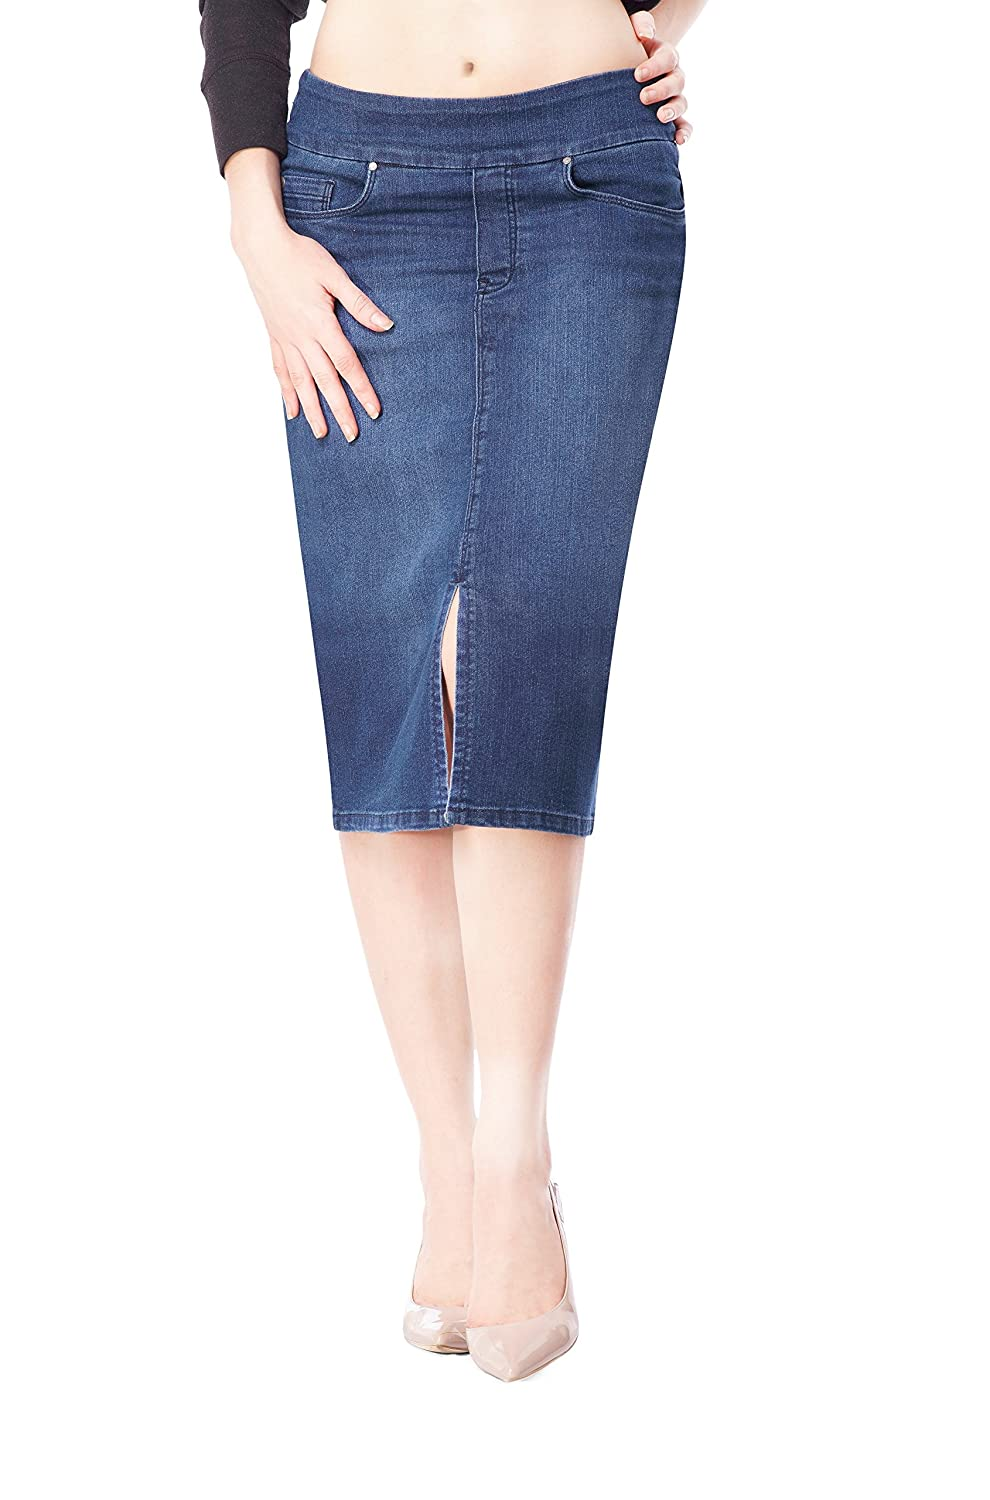 Bluberry women's Nicole medium wash denim skirt